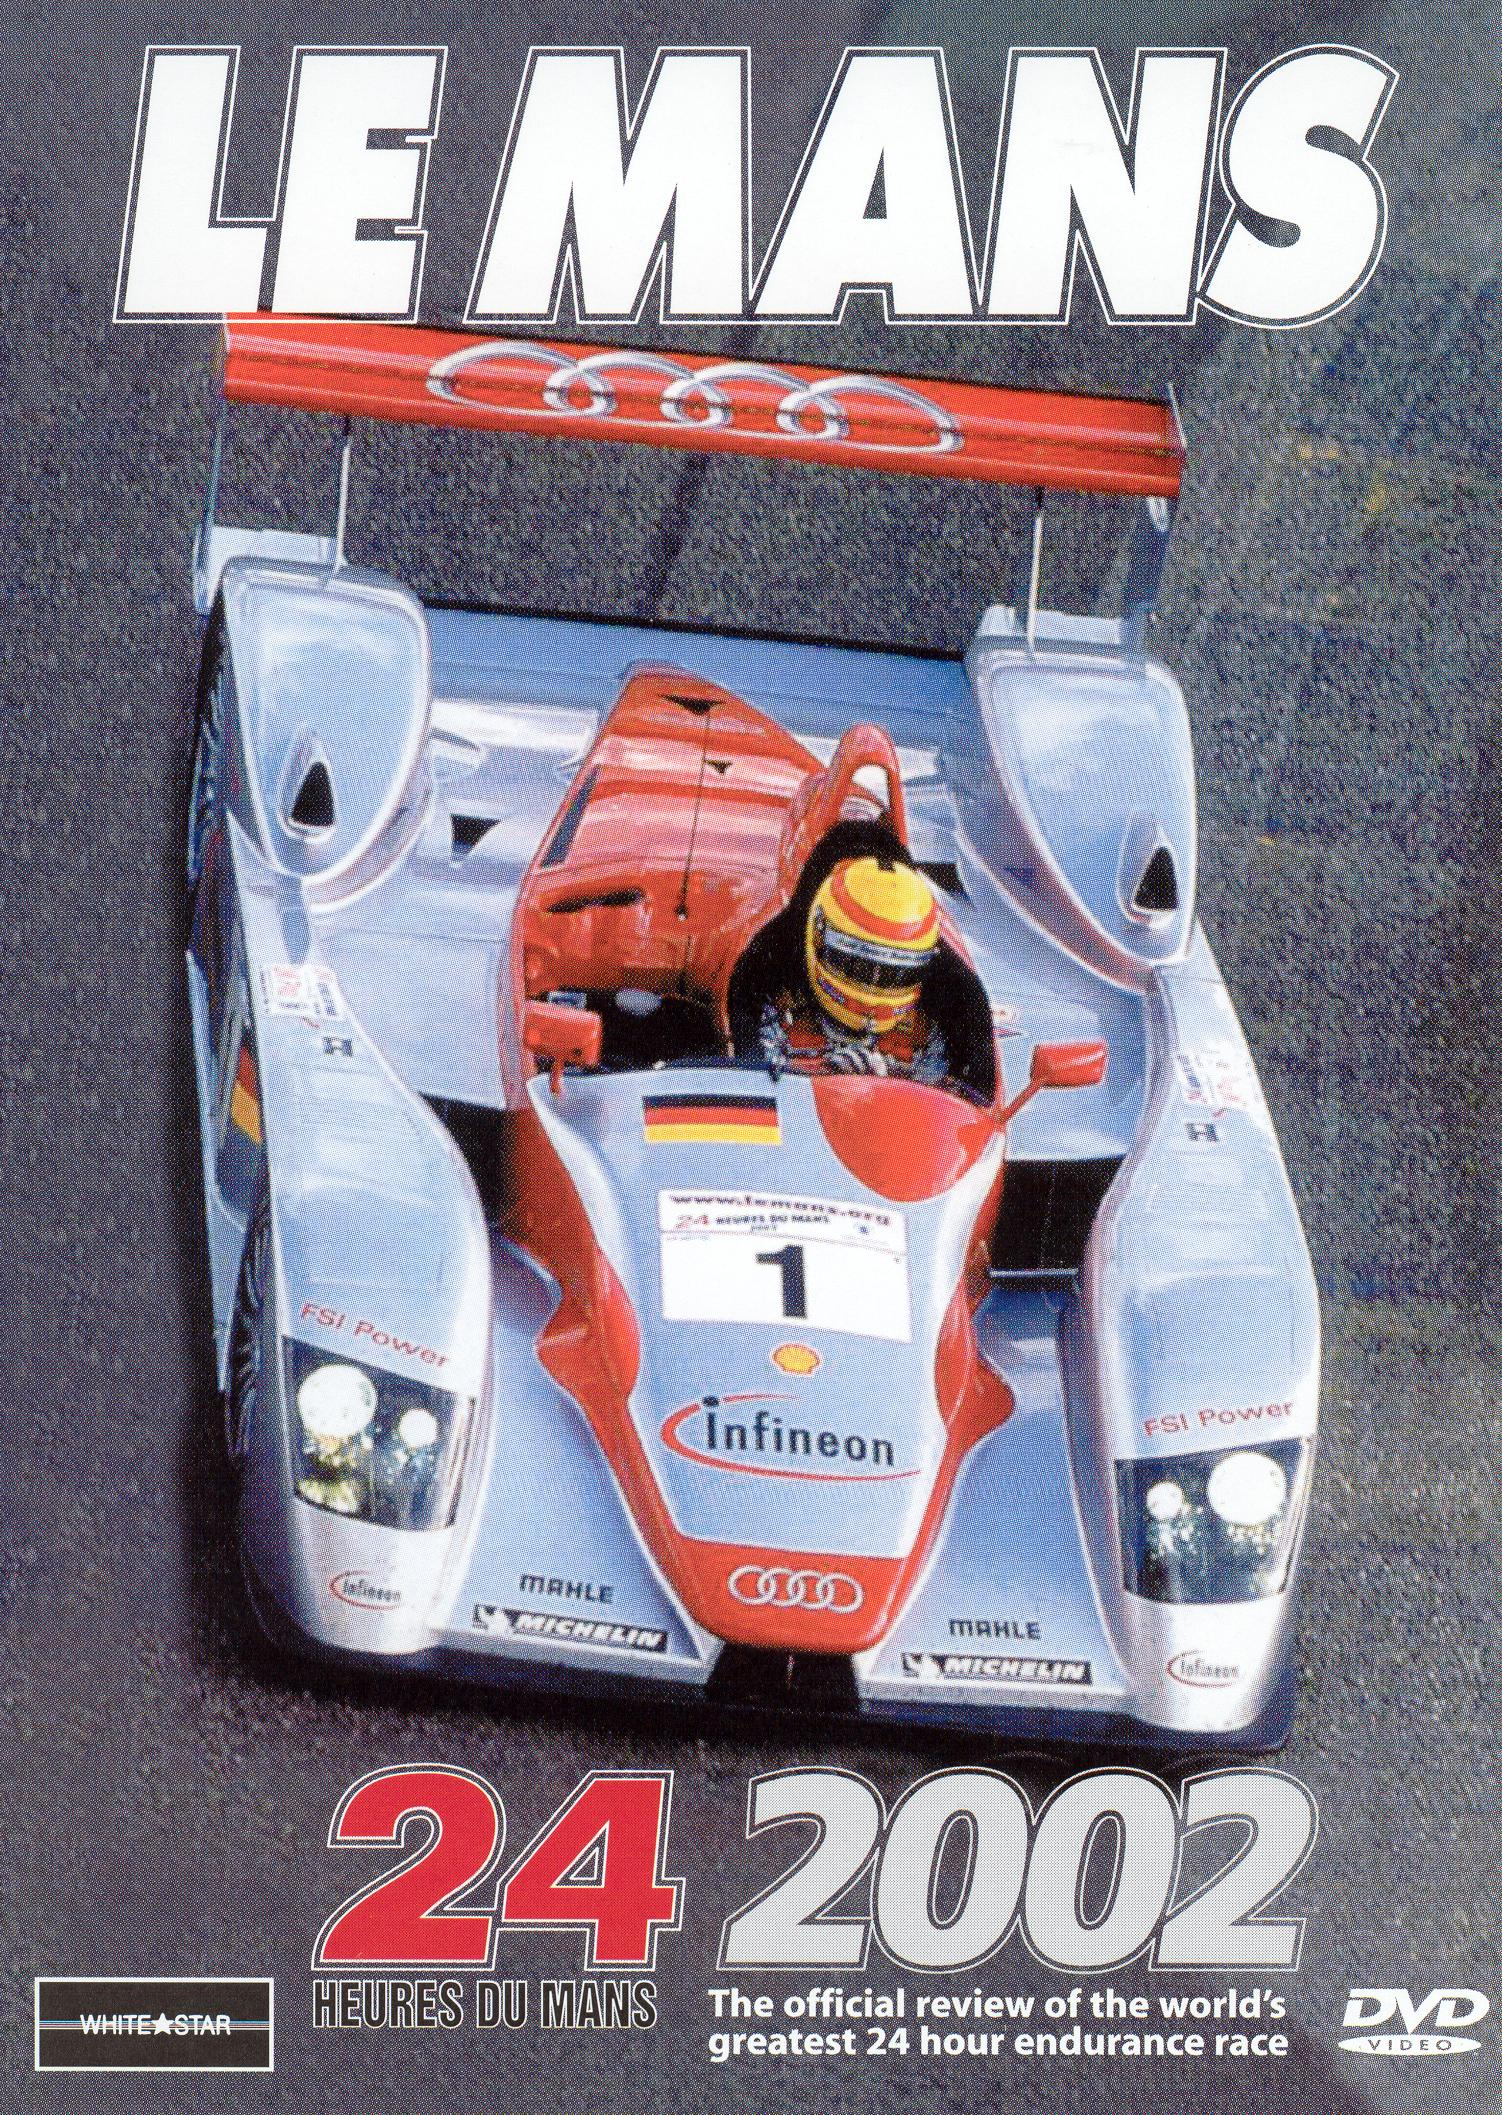 24 Heures du Mans: Le Mans 2002 Official Review